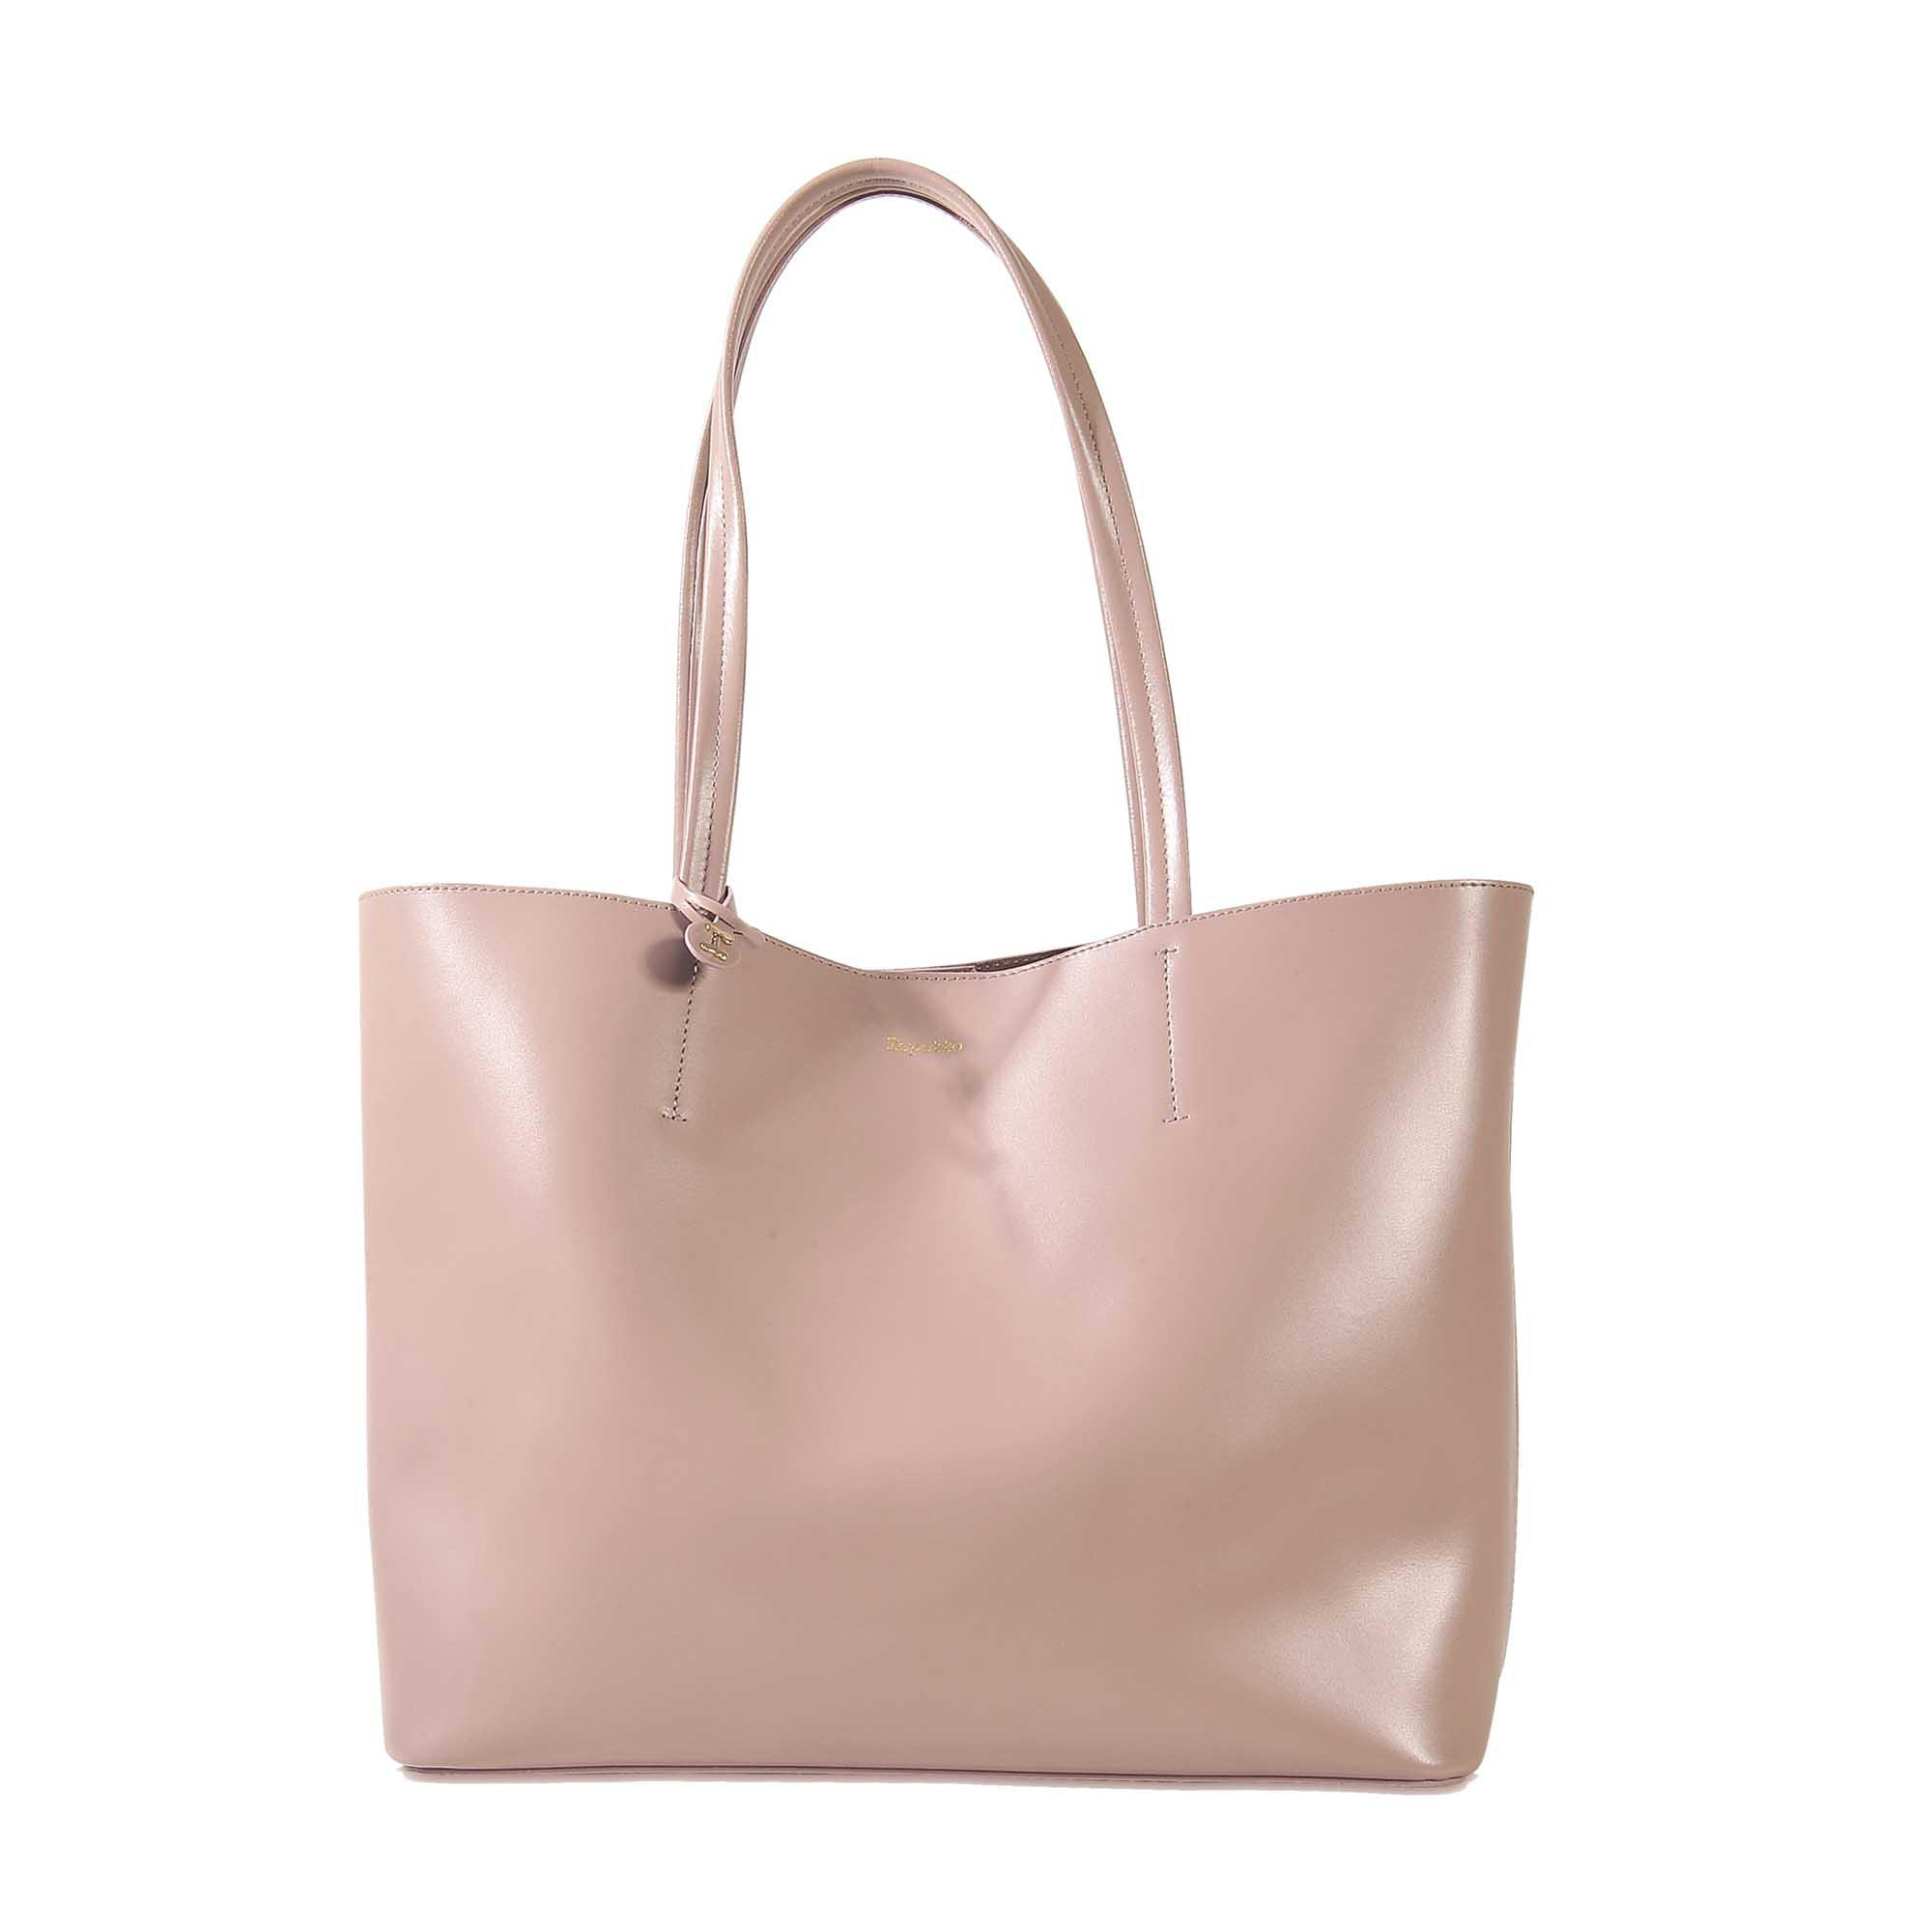 61ffc6325d Lyst - Repetto Quadrille Shopping Bag in Pink